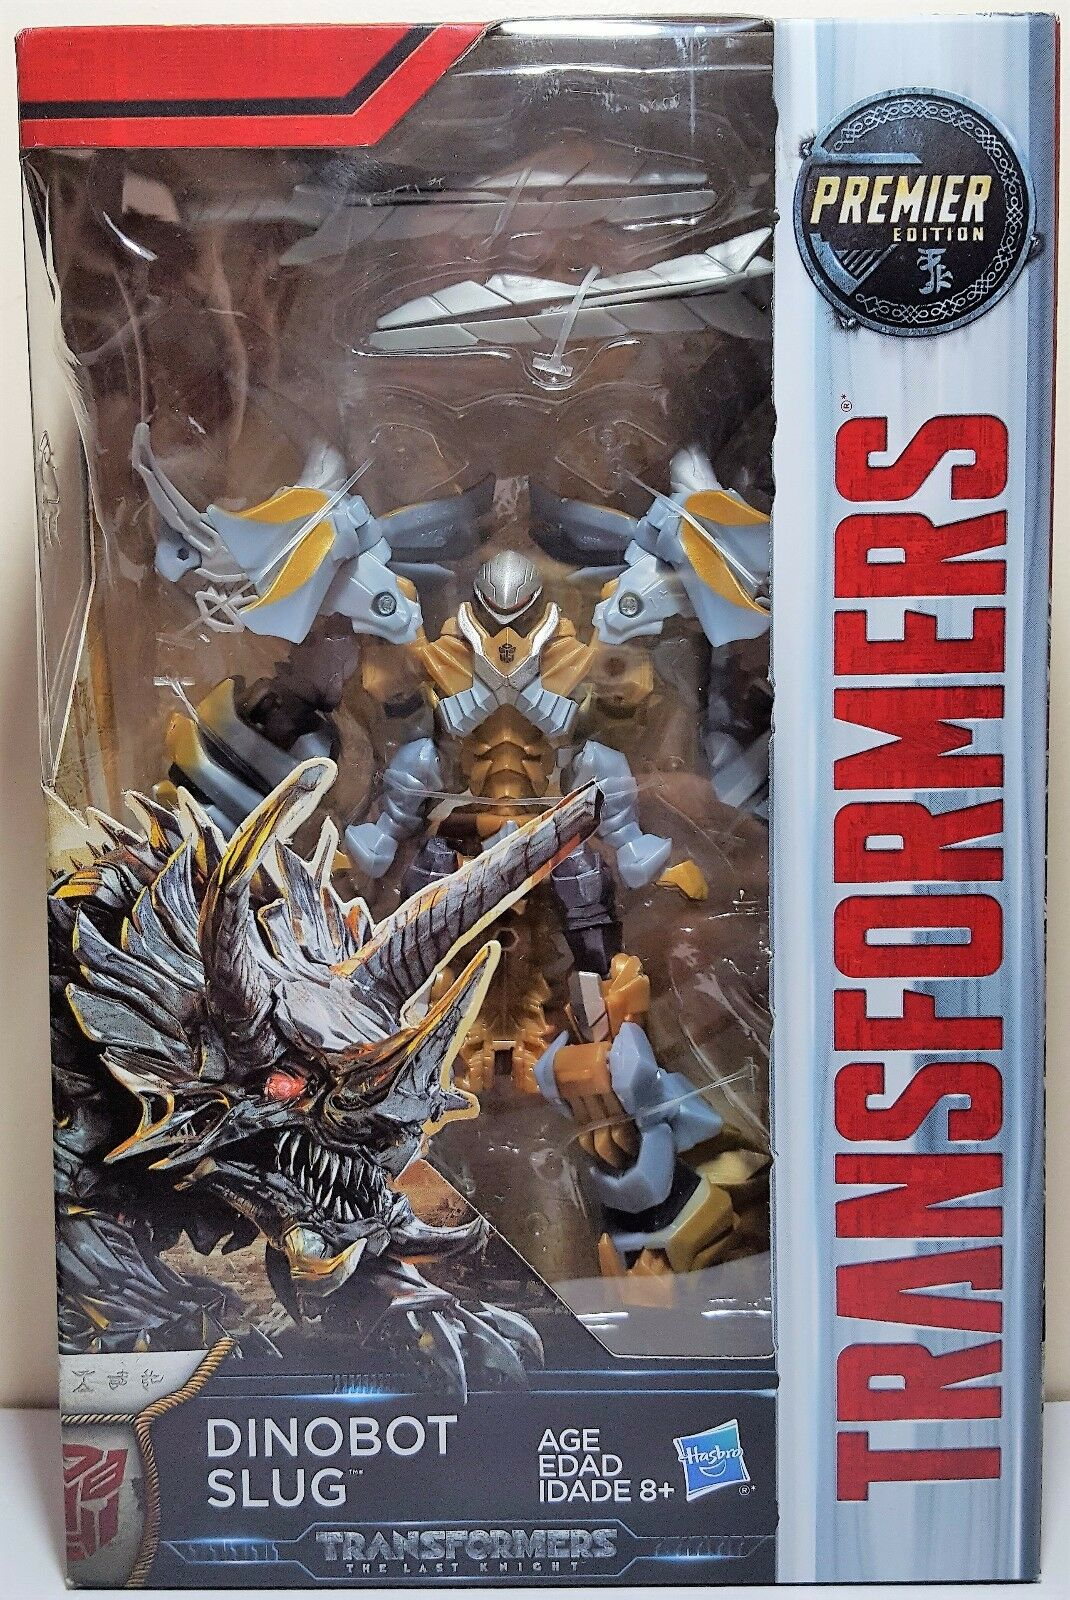 Transformers Dinobot Slug Deluxe Class The Last Knight Premier Edition